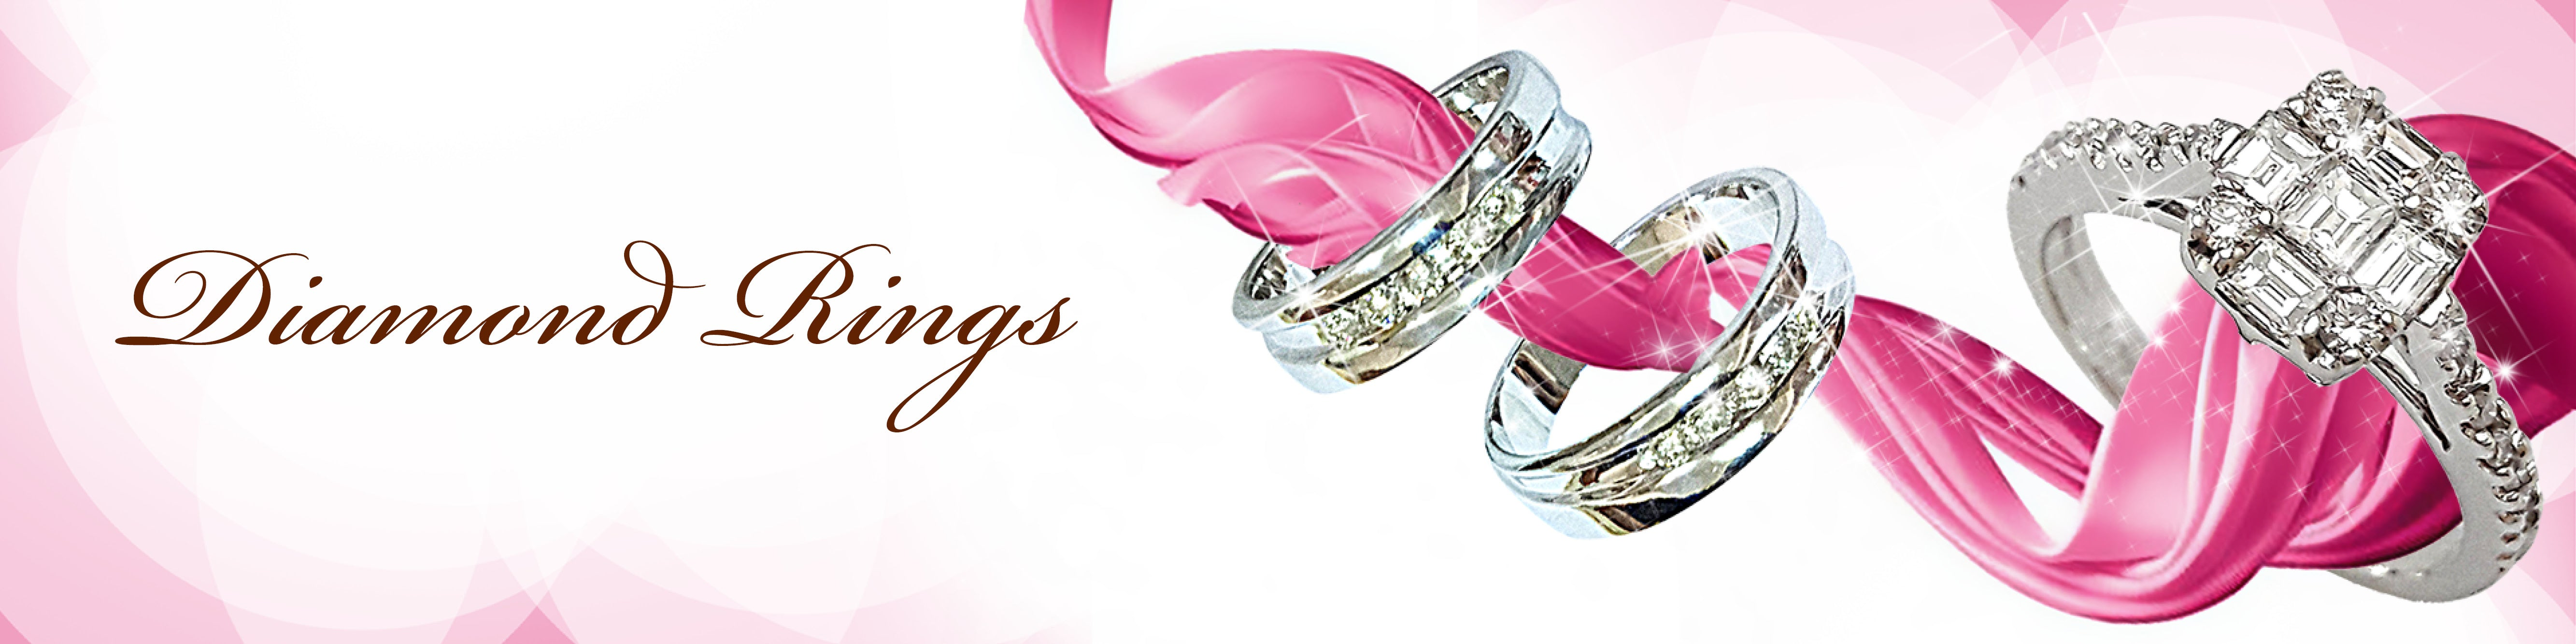 Diamond Rings Collection Cover Photo